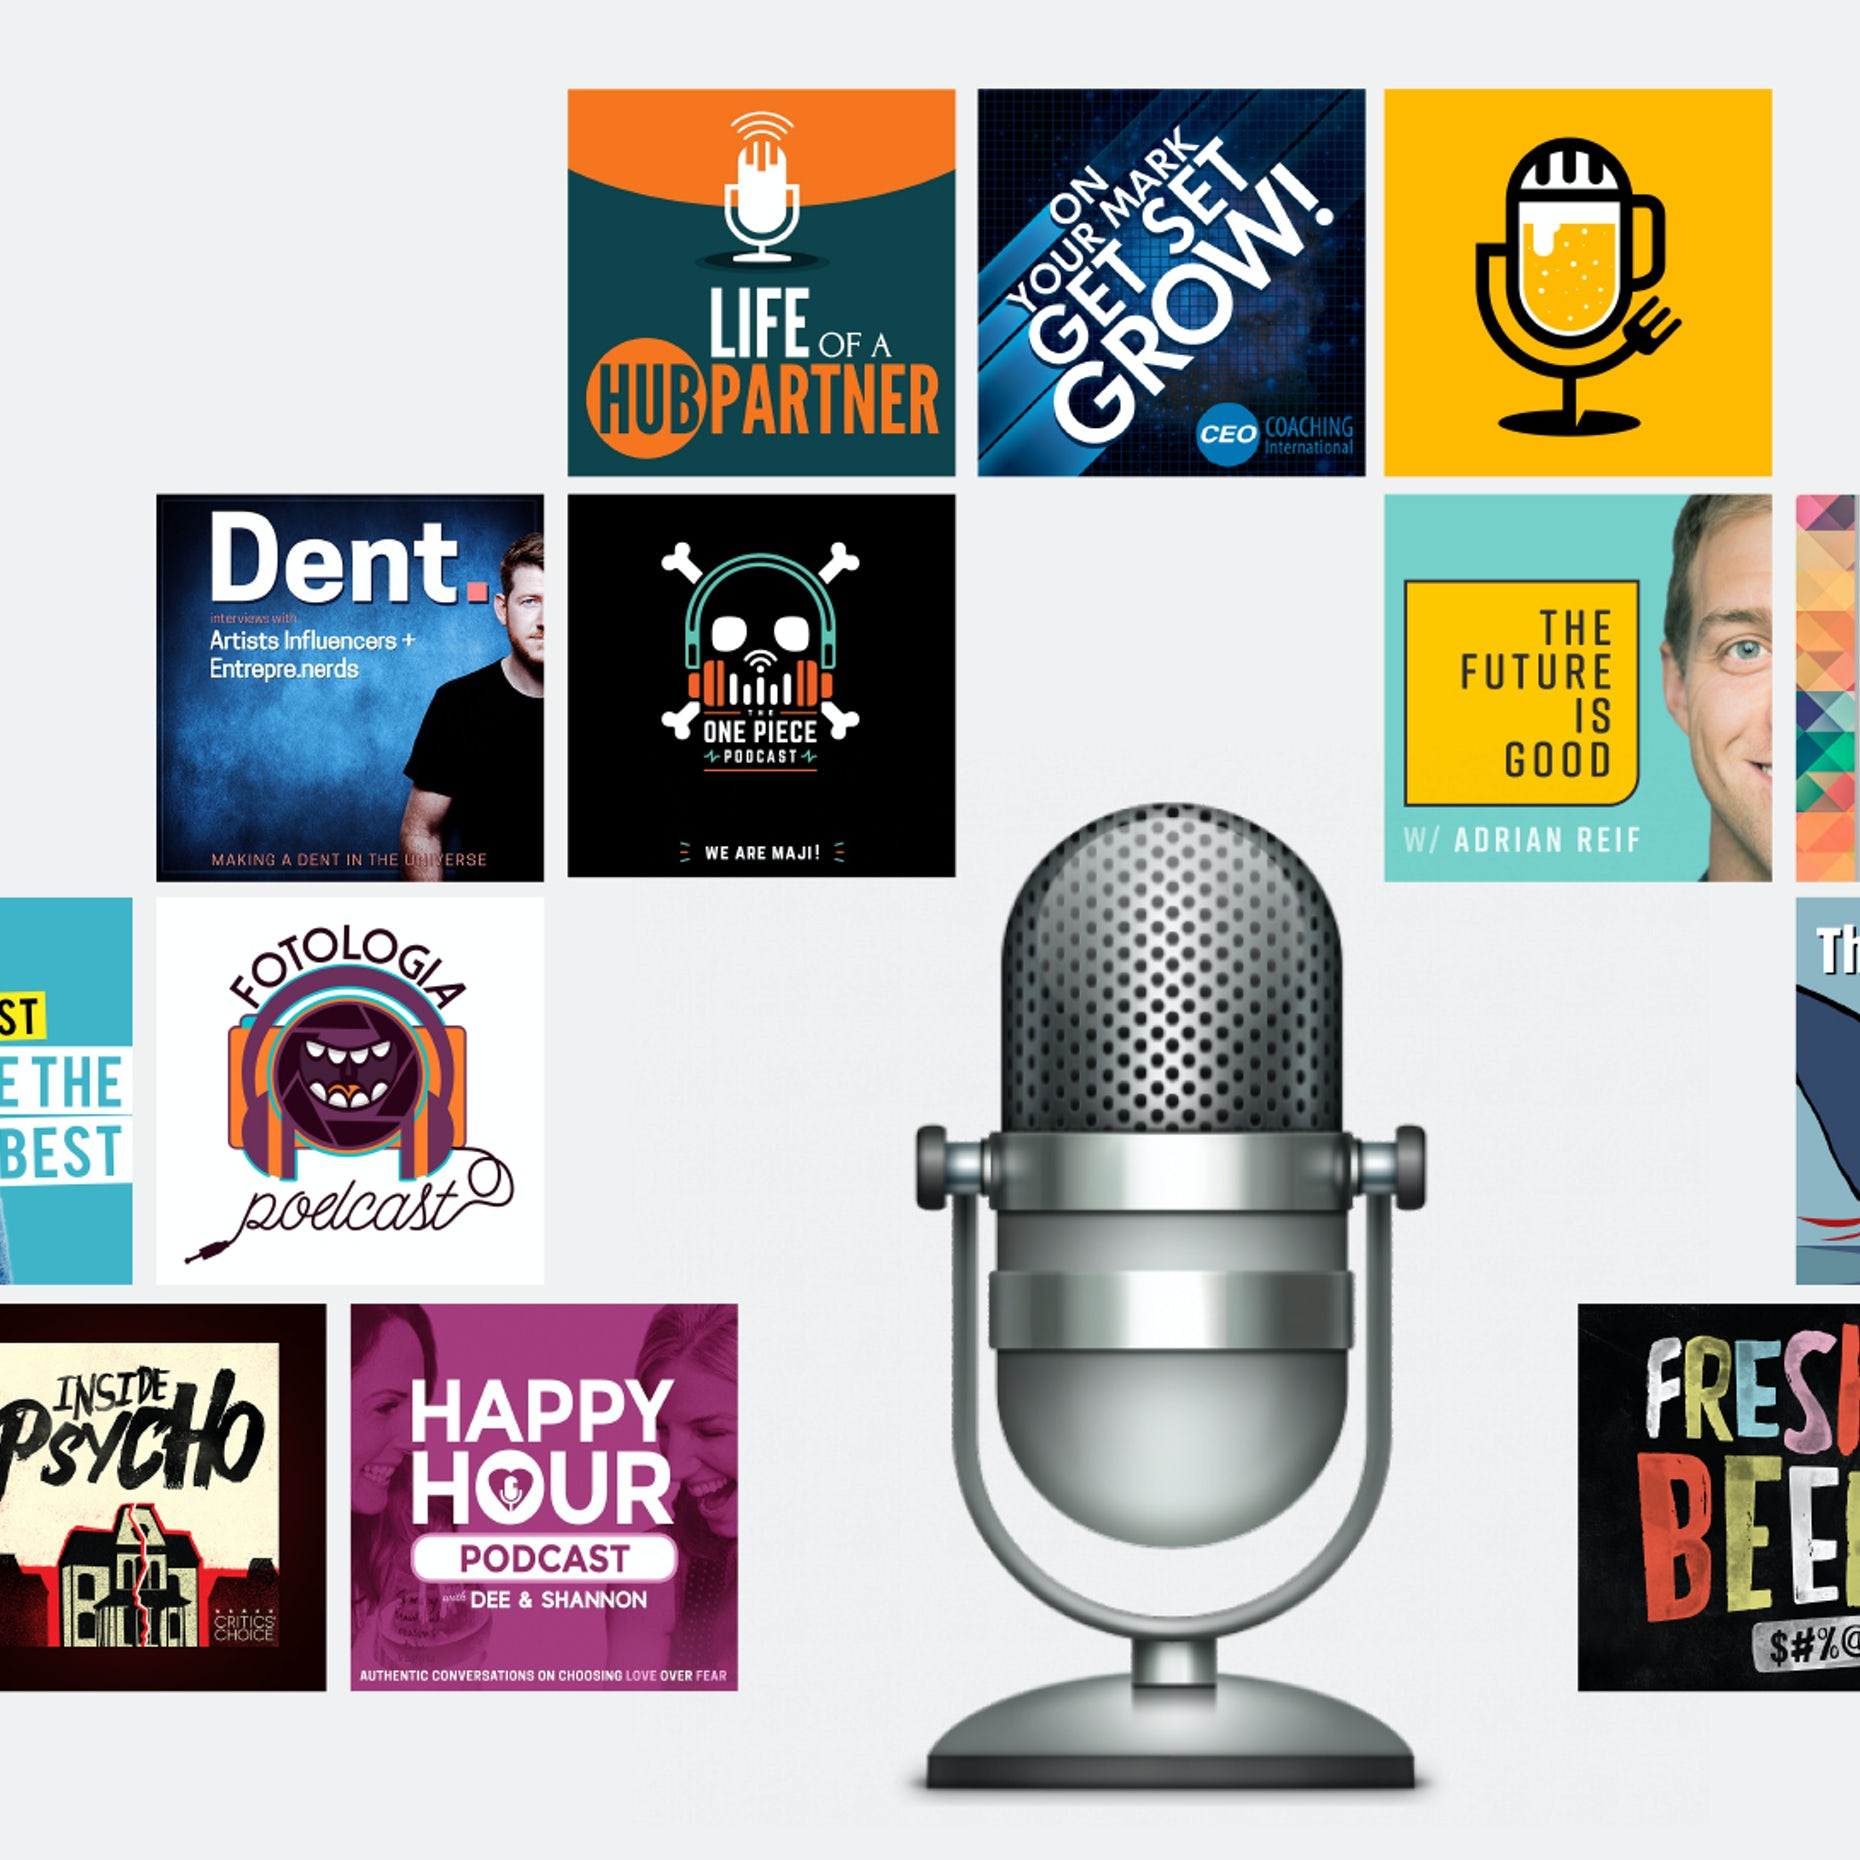 How to design a podcast cover: the ultimate guide - 99designs